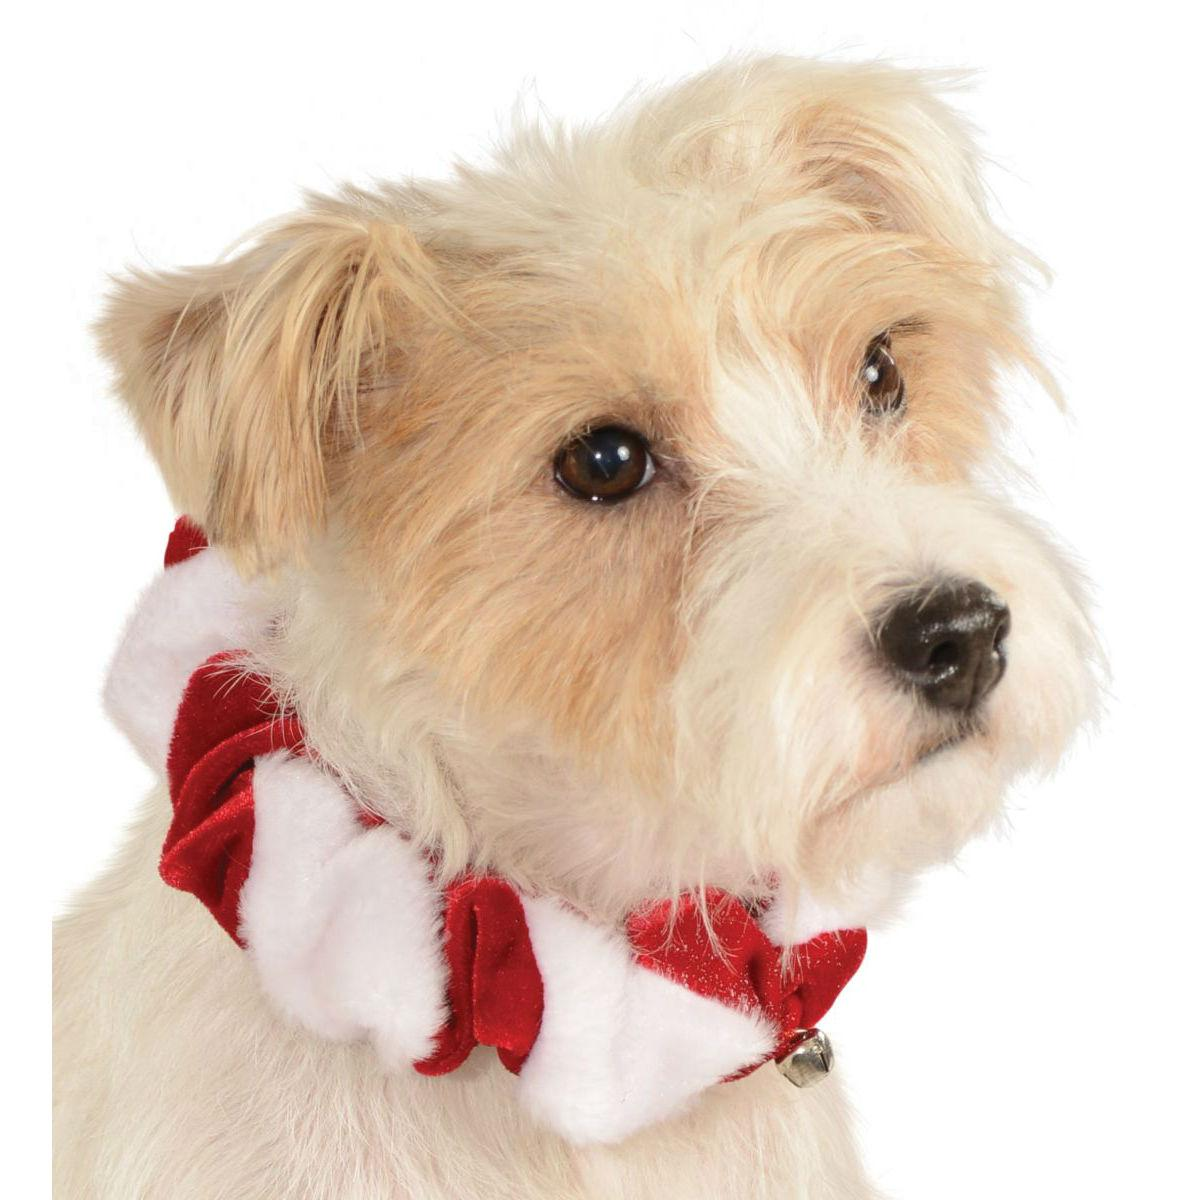 Rubies Candy Cane Dog and Cat Scrunchie - Red